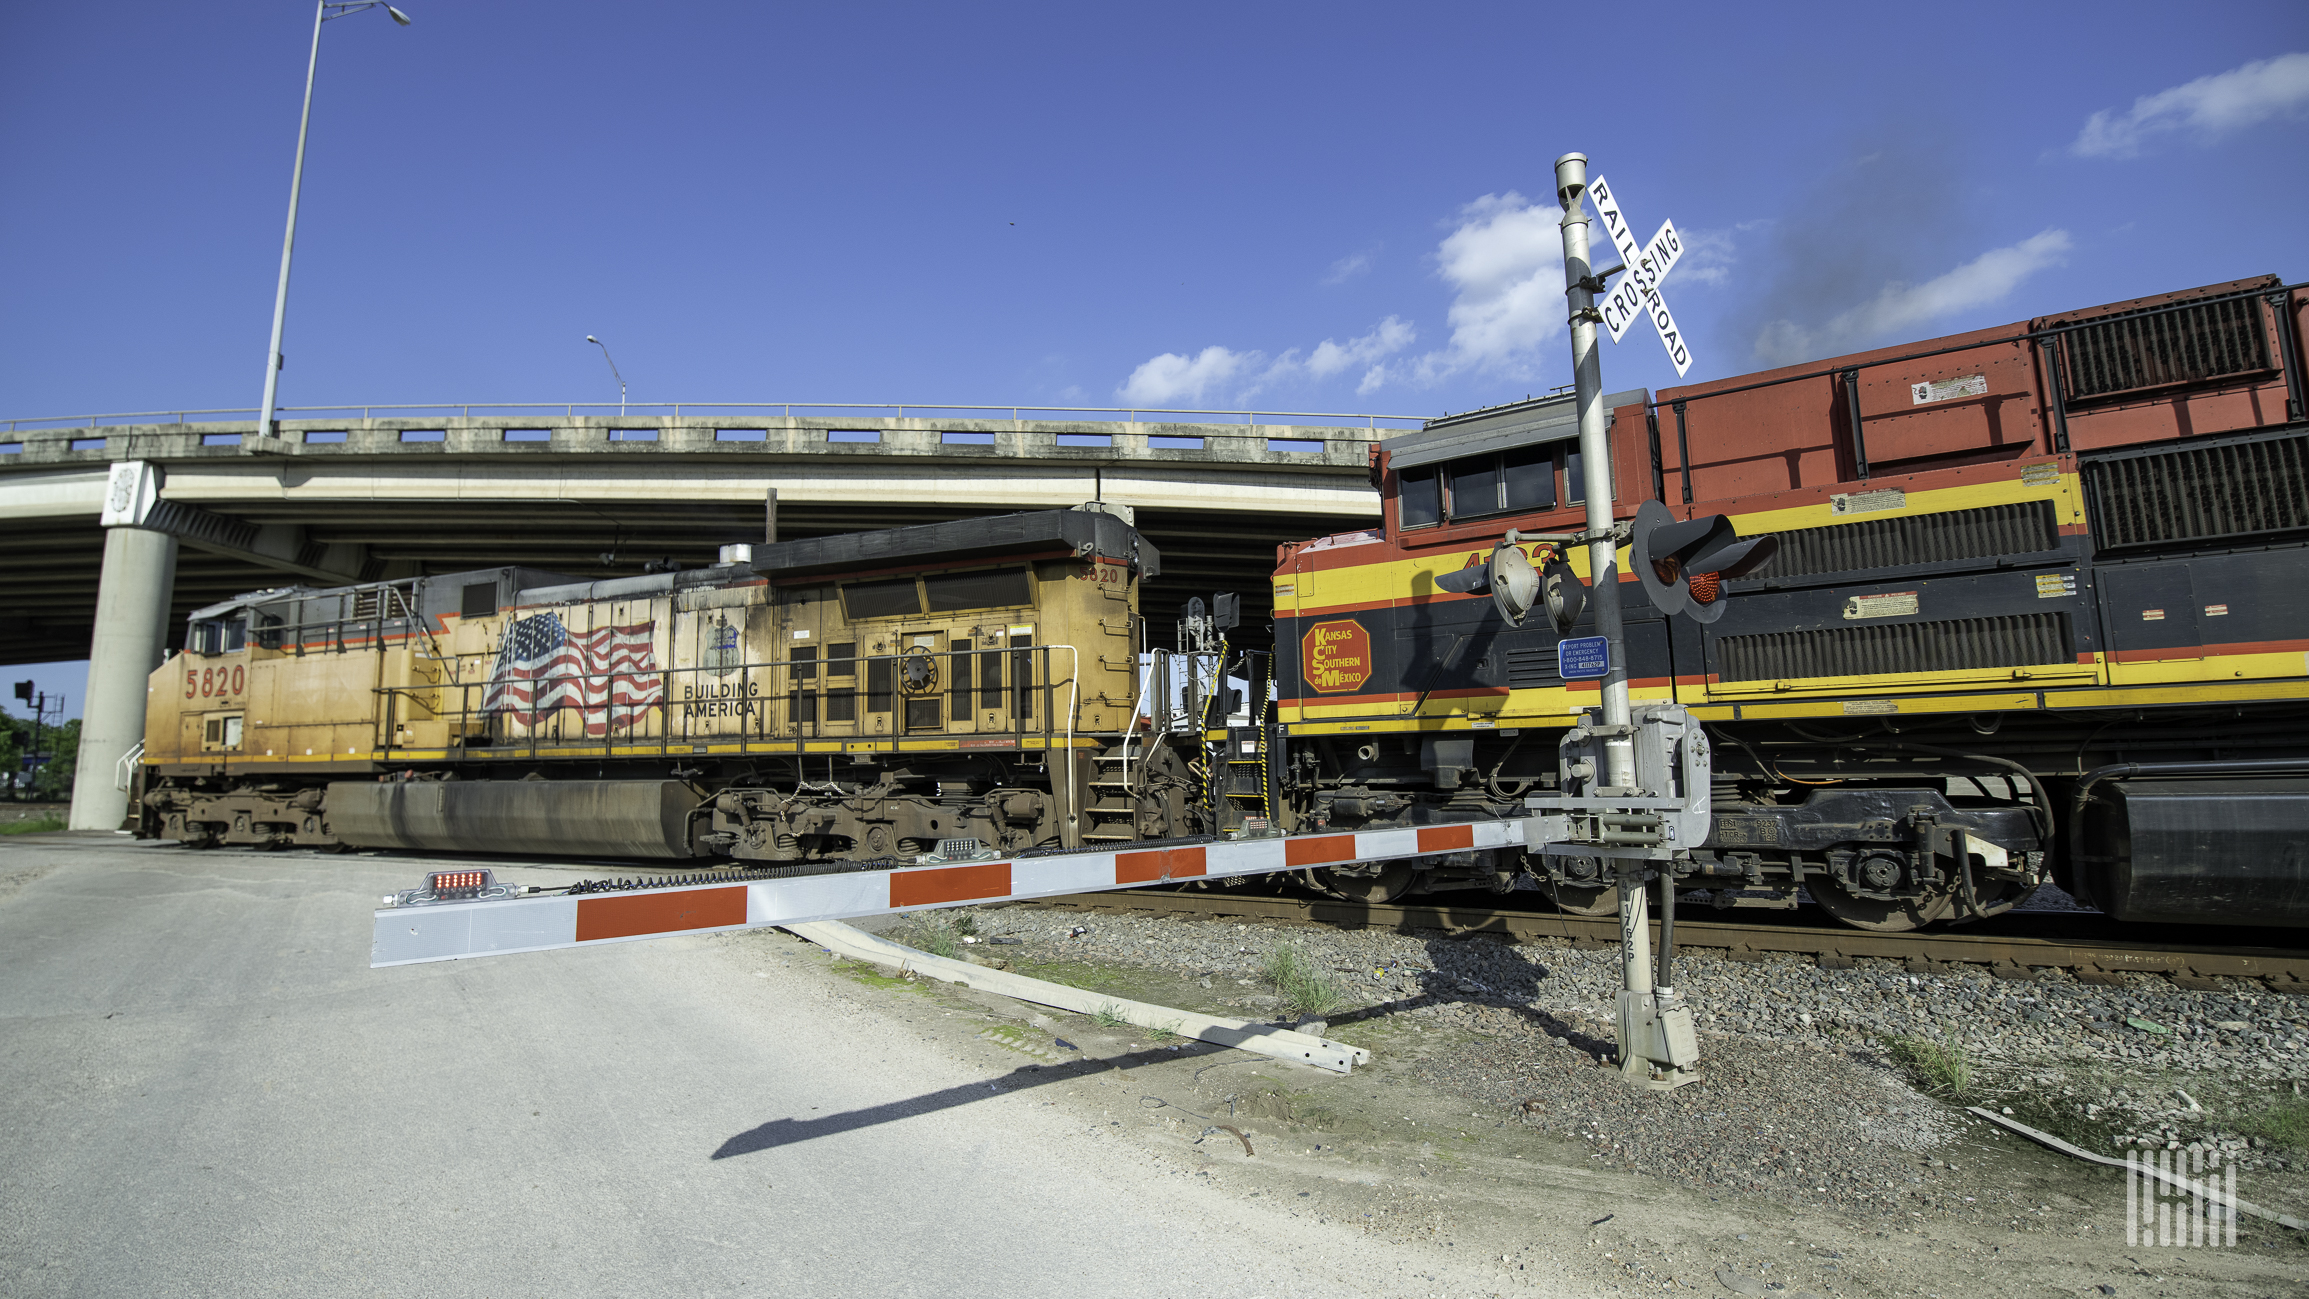 A photograph of a Union Pacific locomotive and a Kansas City Southern locomotive at a rail crossing.